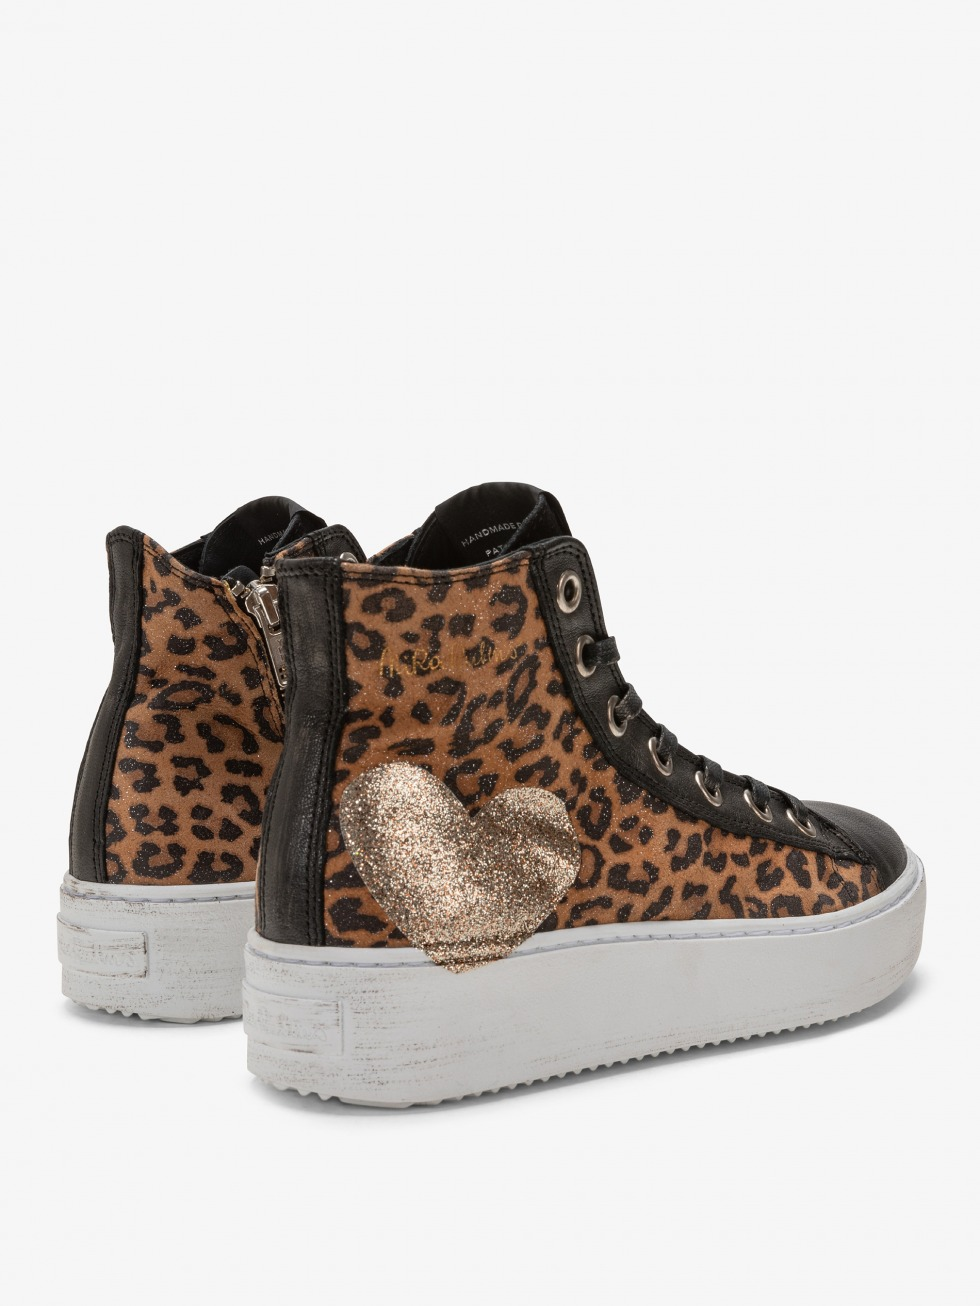 Long Island Sneakers - Glitter Leo Heart